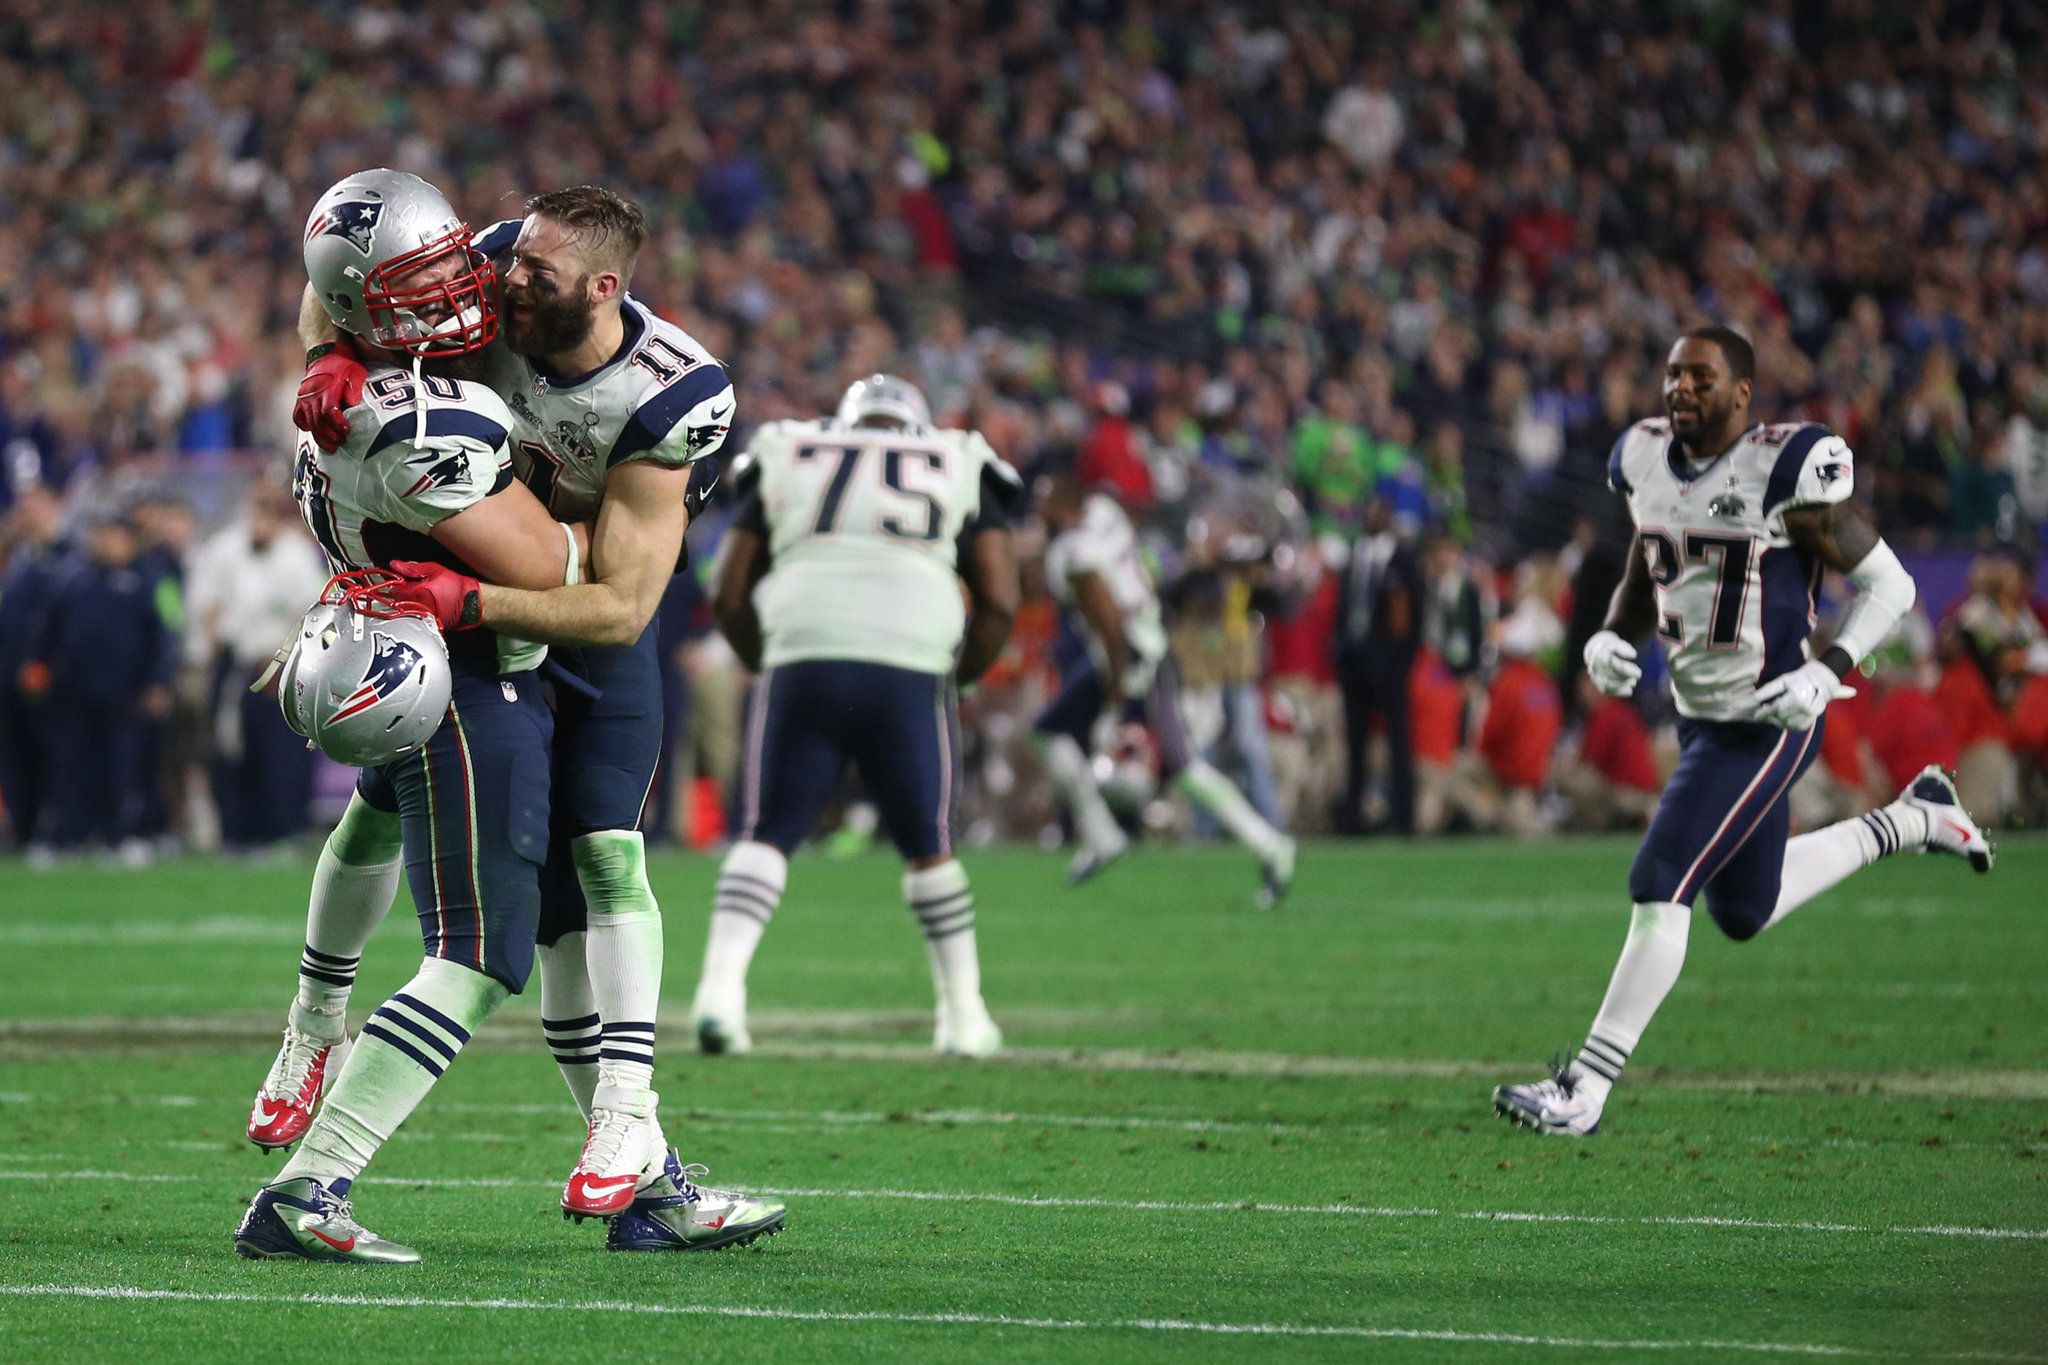 One Yard From Crushing Loss Patriots Grab Their 4th Title New England Patriots Super Bowl Patriots